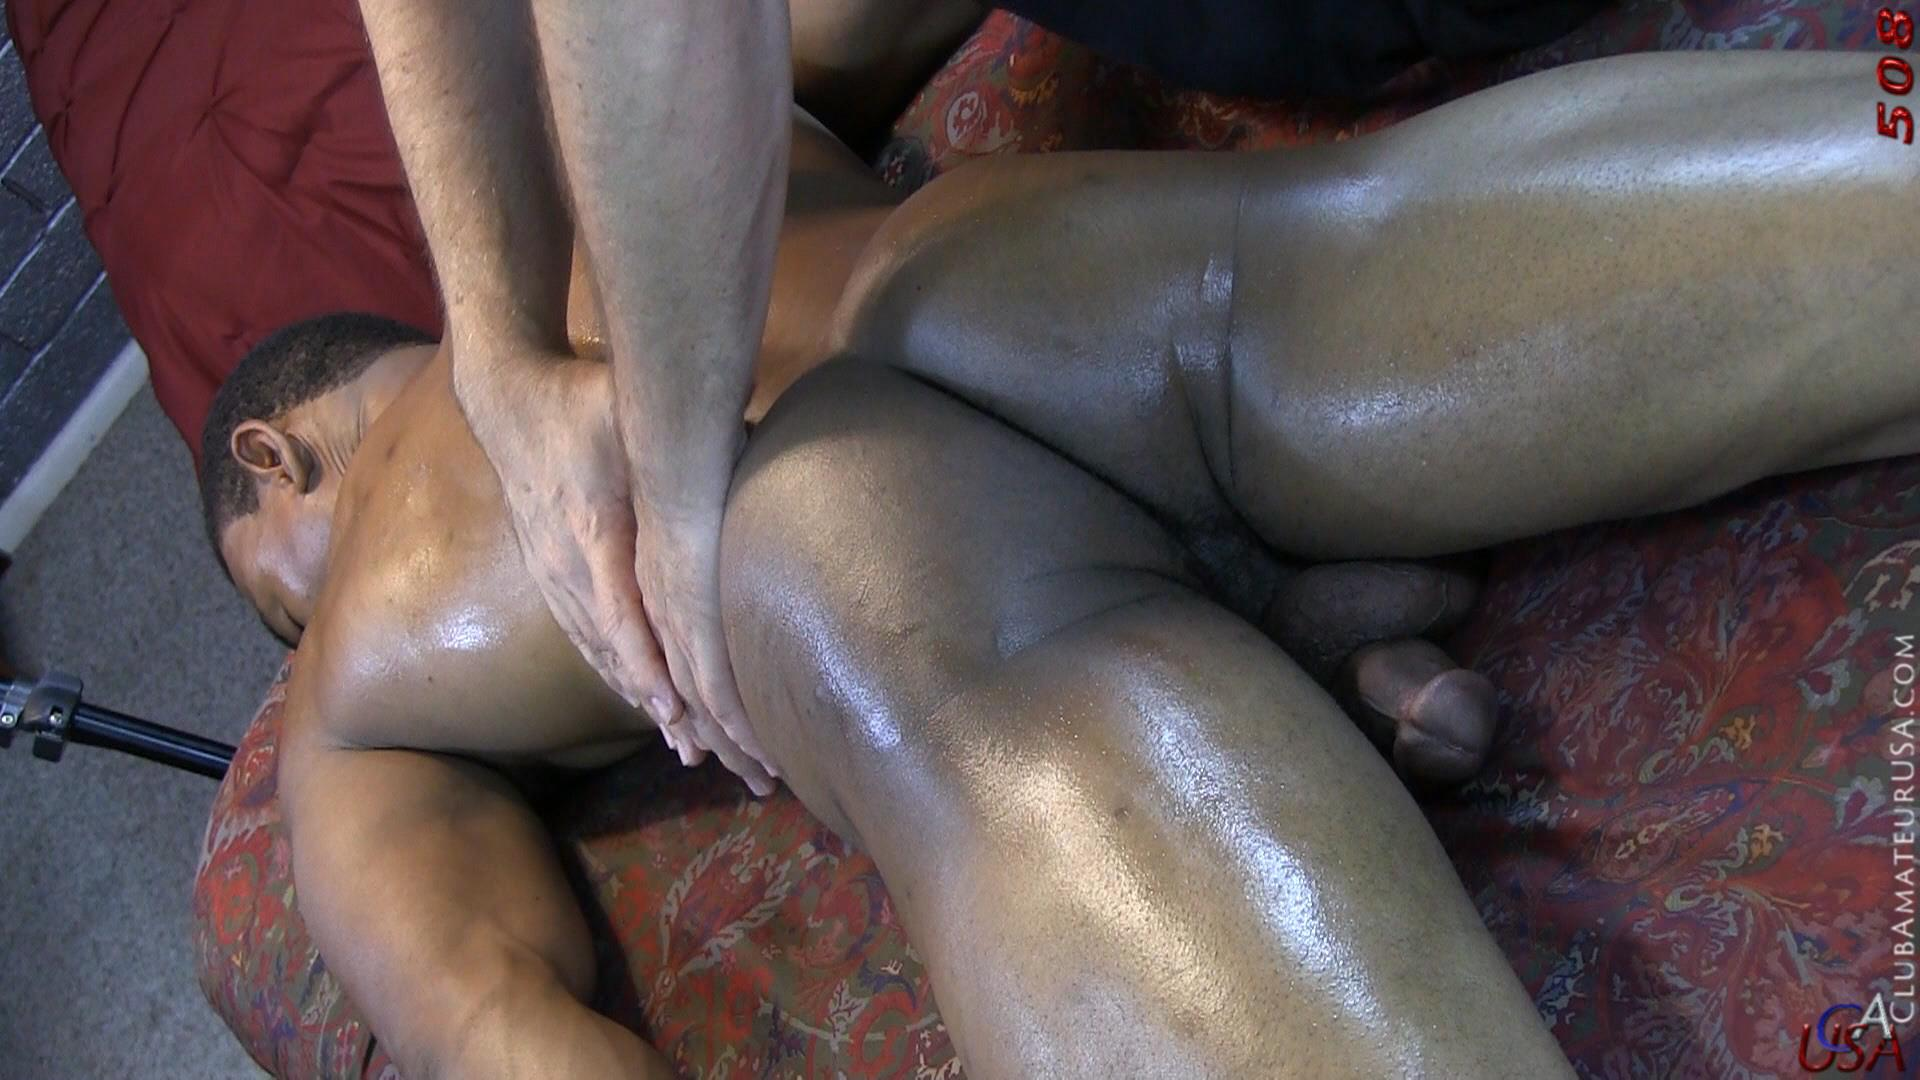 eating cum gay black muscle men xhamster